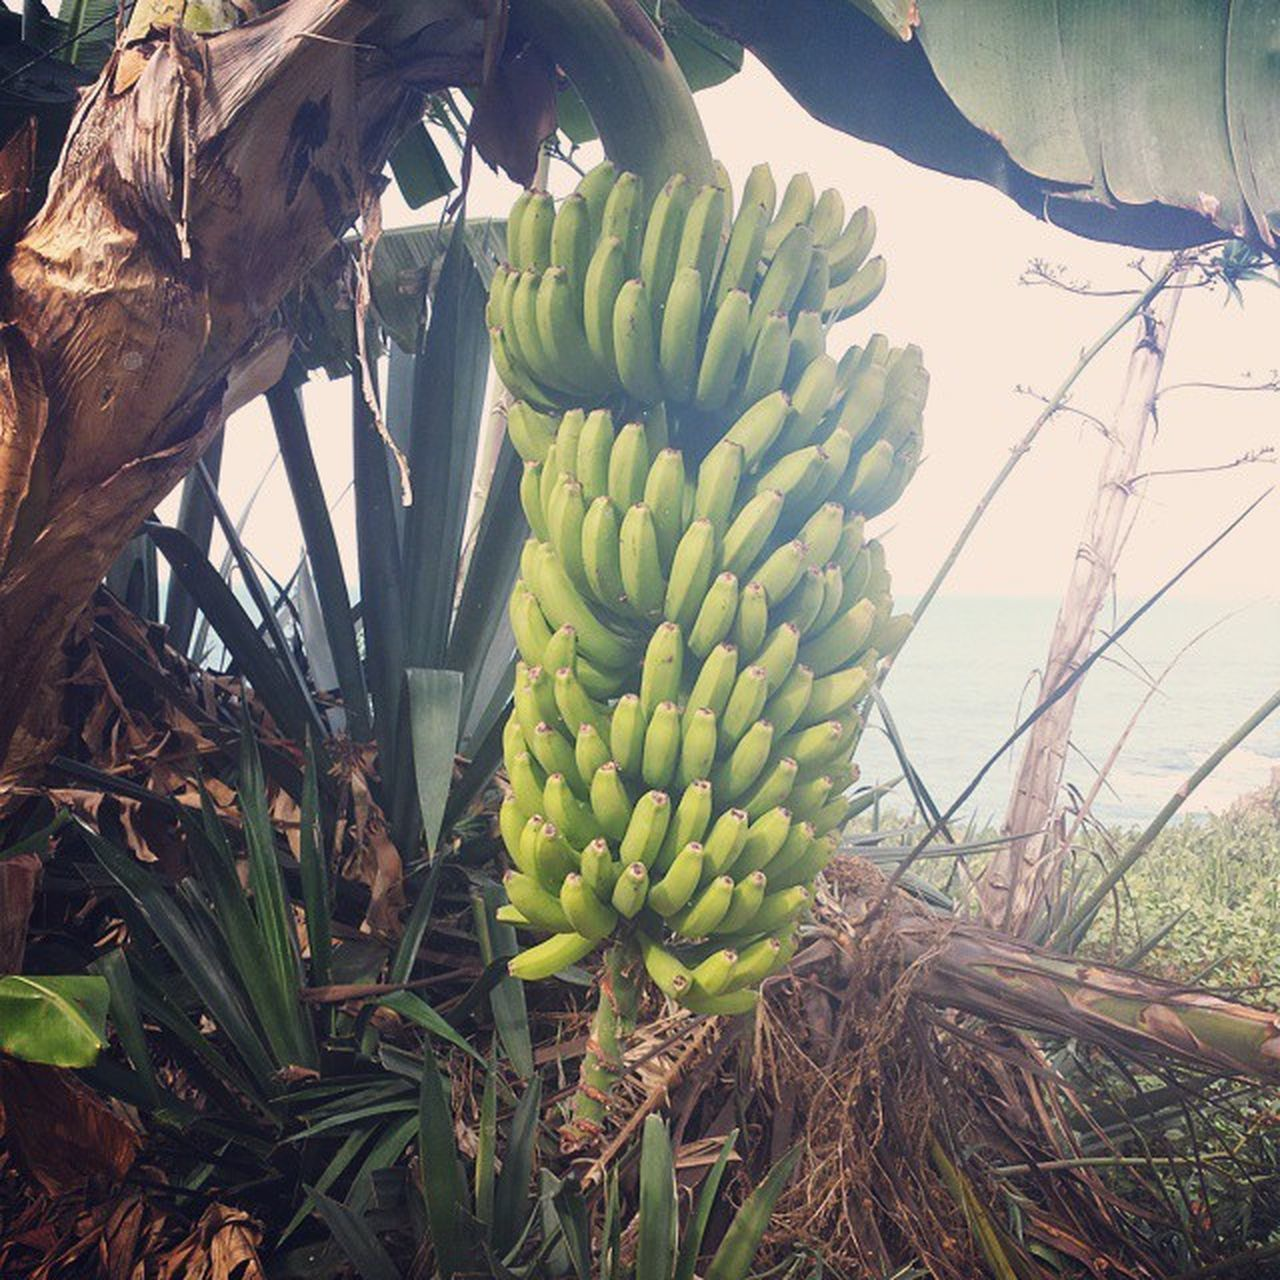 growth, nature, banana, no people, banana tree, plant, green color, field, day, fruit, outdoors, beauty in nature, tree, freshness, close-up